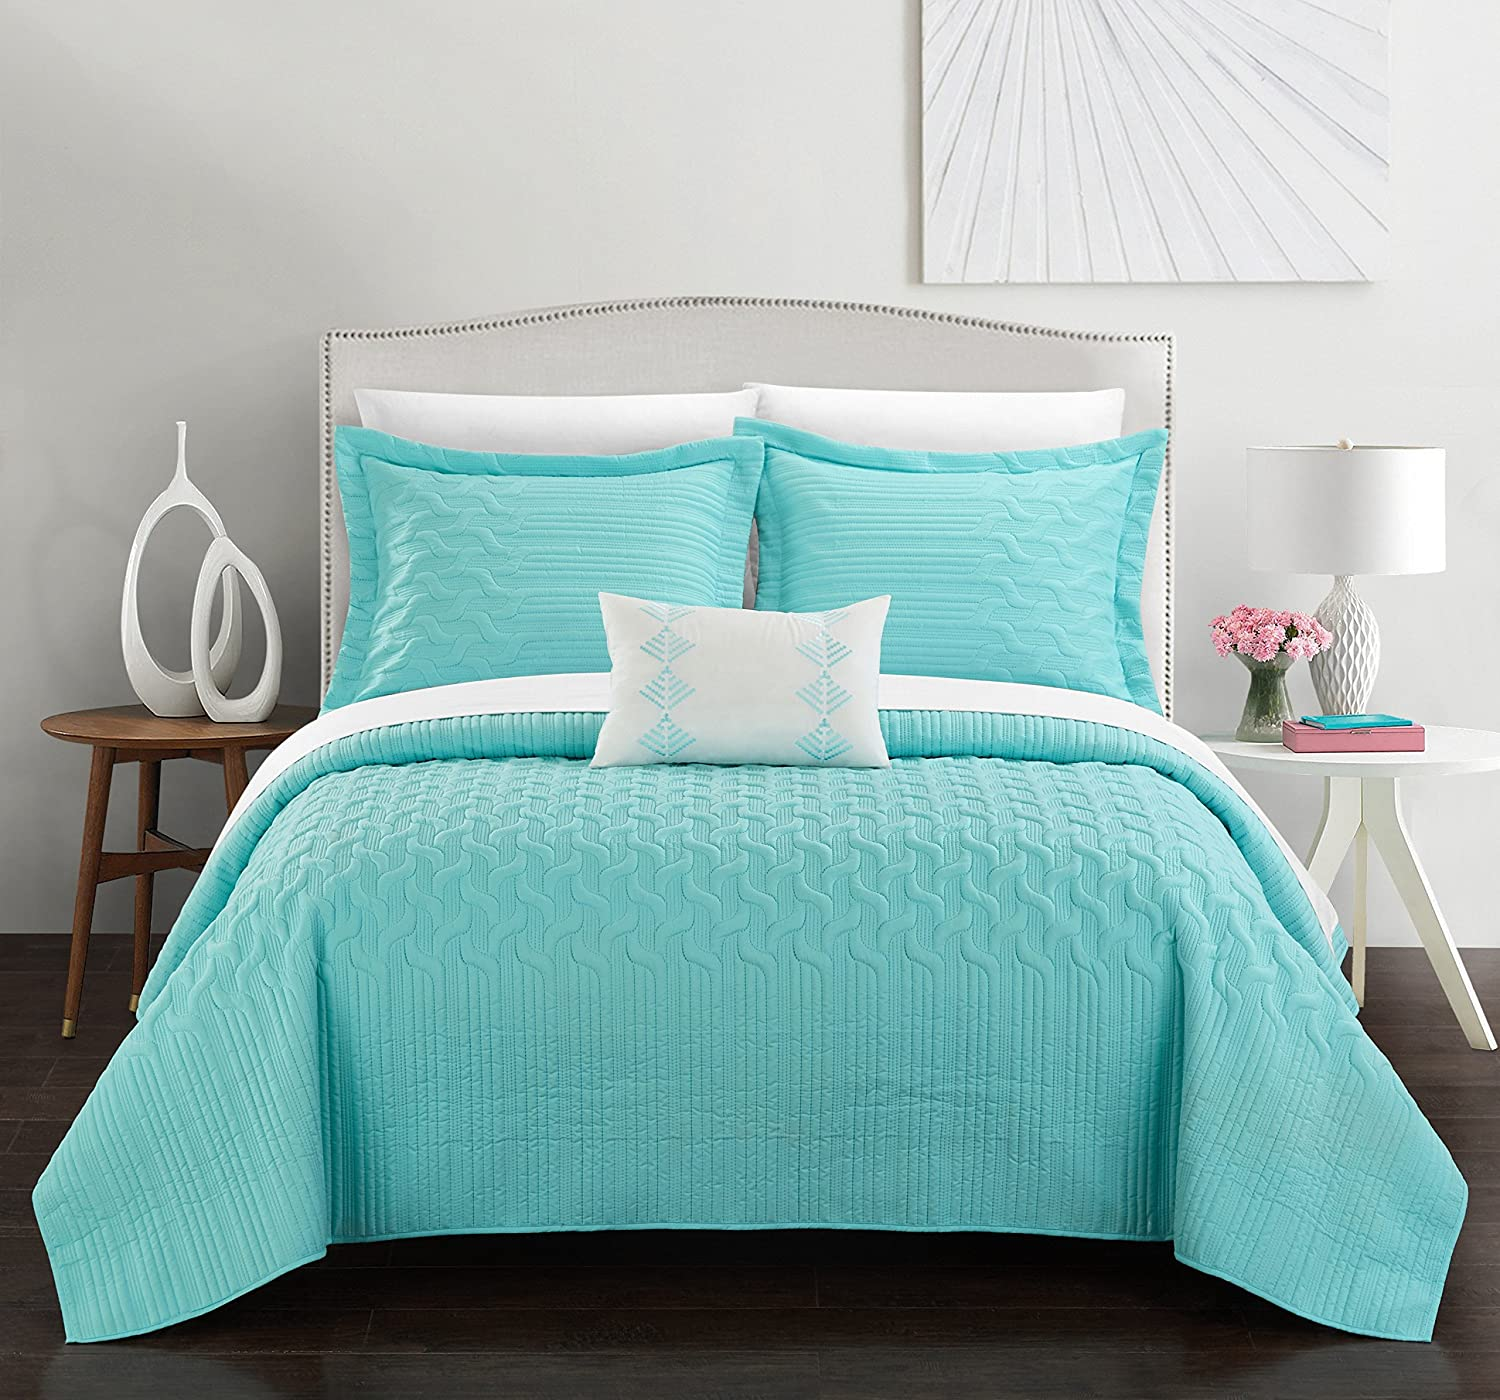 Chic Home Shalya 4 Piece Cover Set Interlaced Vine Pattern Quilted Bed in a Bag-Decorative Pillow Shams Included, Queen, Aqua